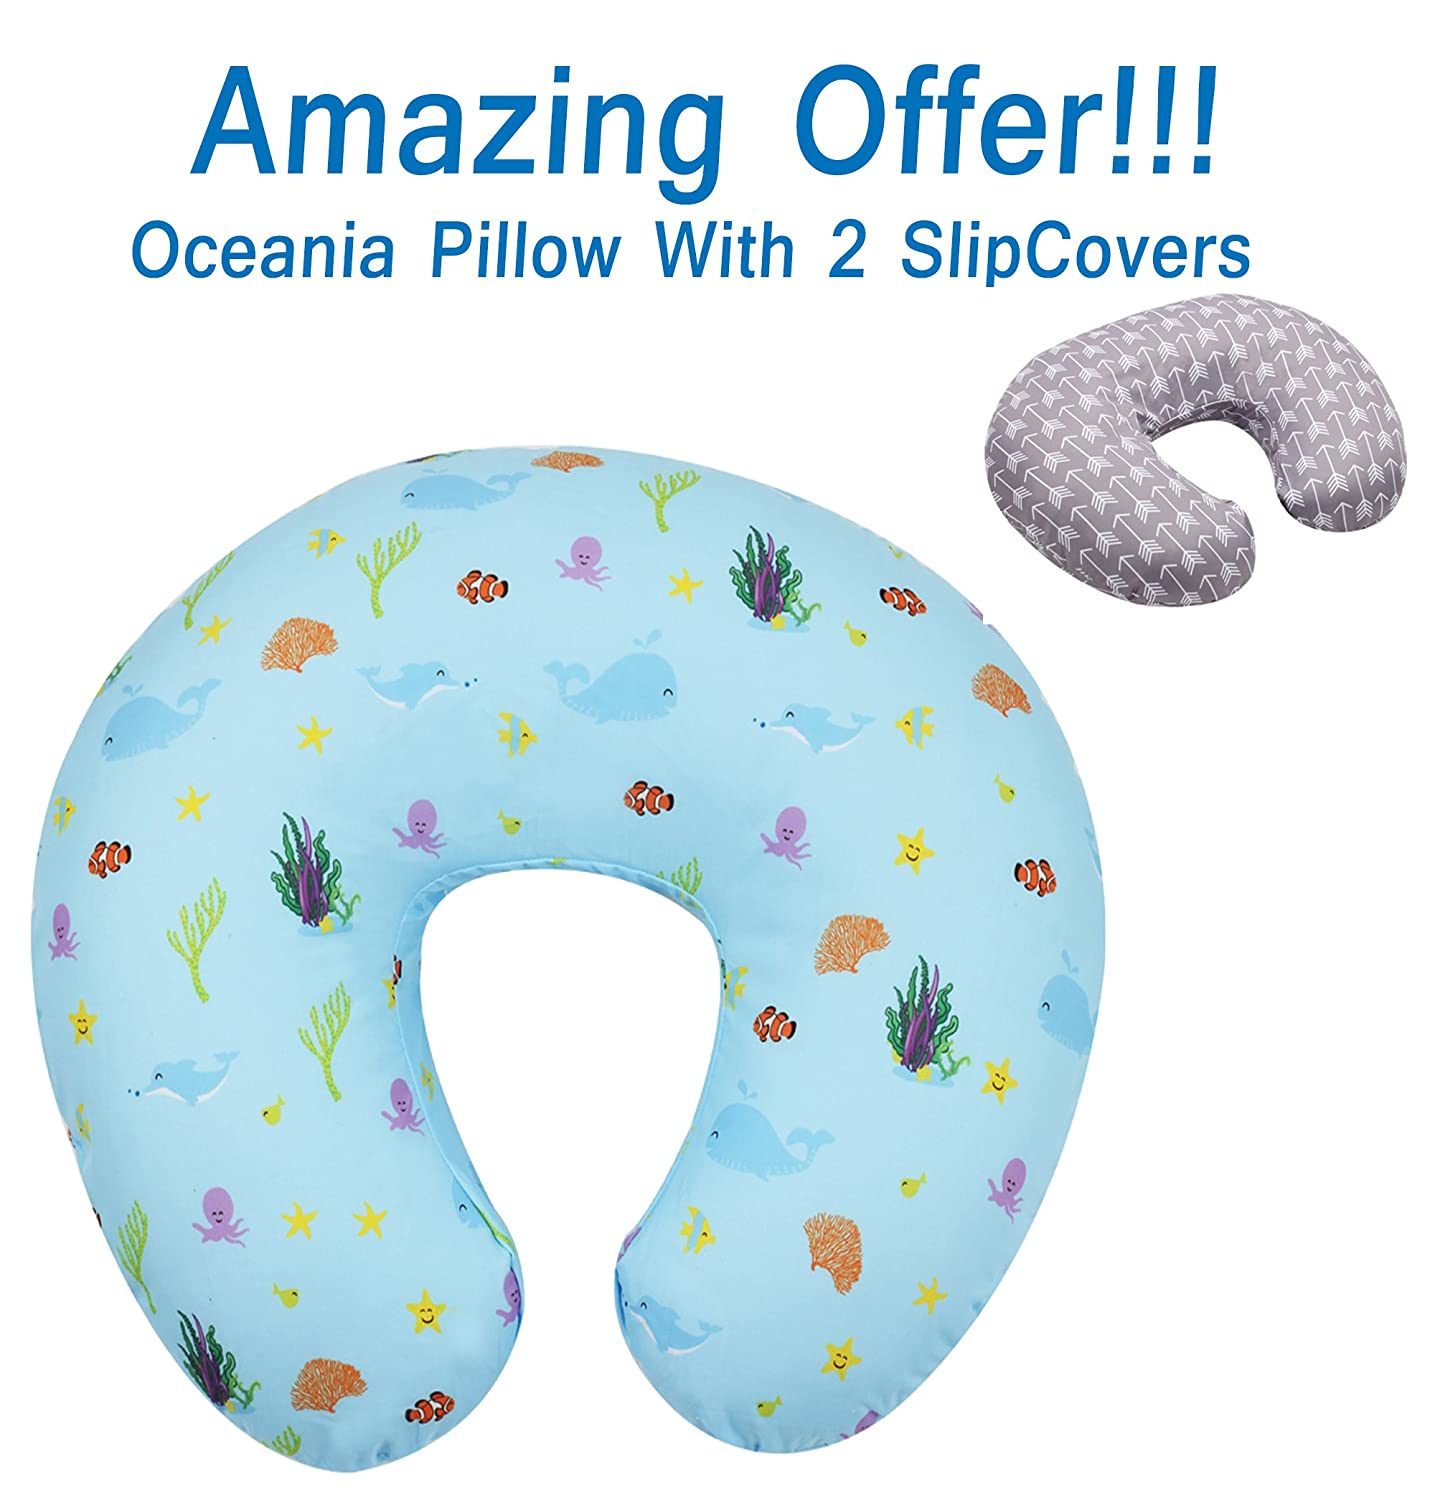 SALE - Mom and Baby Nursing Pillow and Positioner (1 Pillow With TWO Slipcovers), Positioning & Support For Breastfeeding Moms & Baby. A Perfect Present / Great Baby Shower Gift! MyTickles